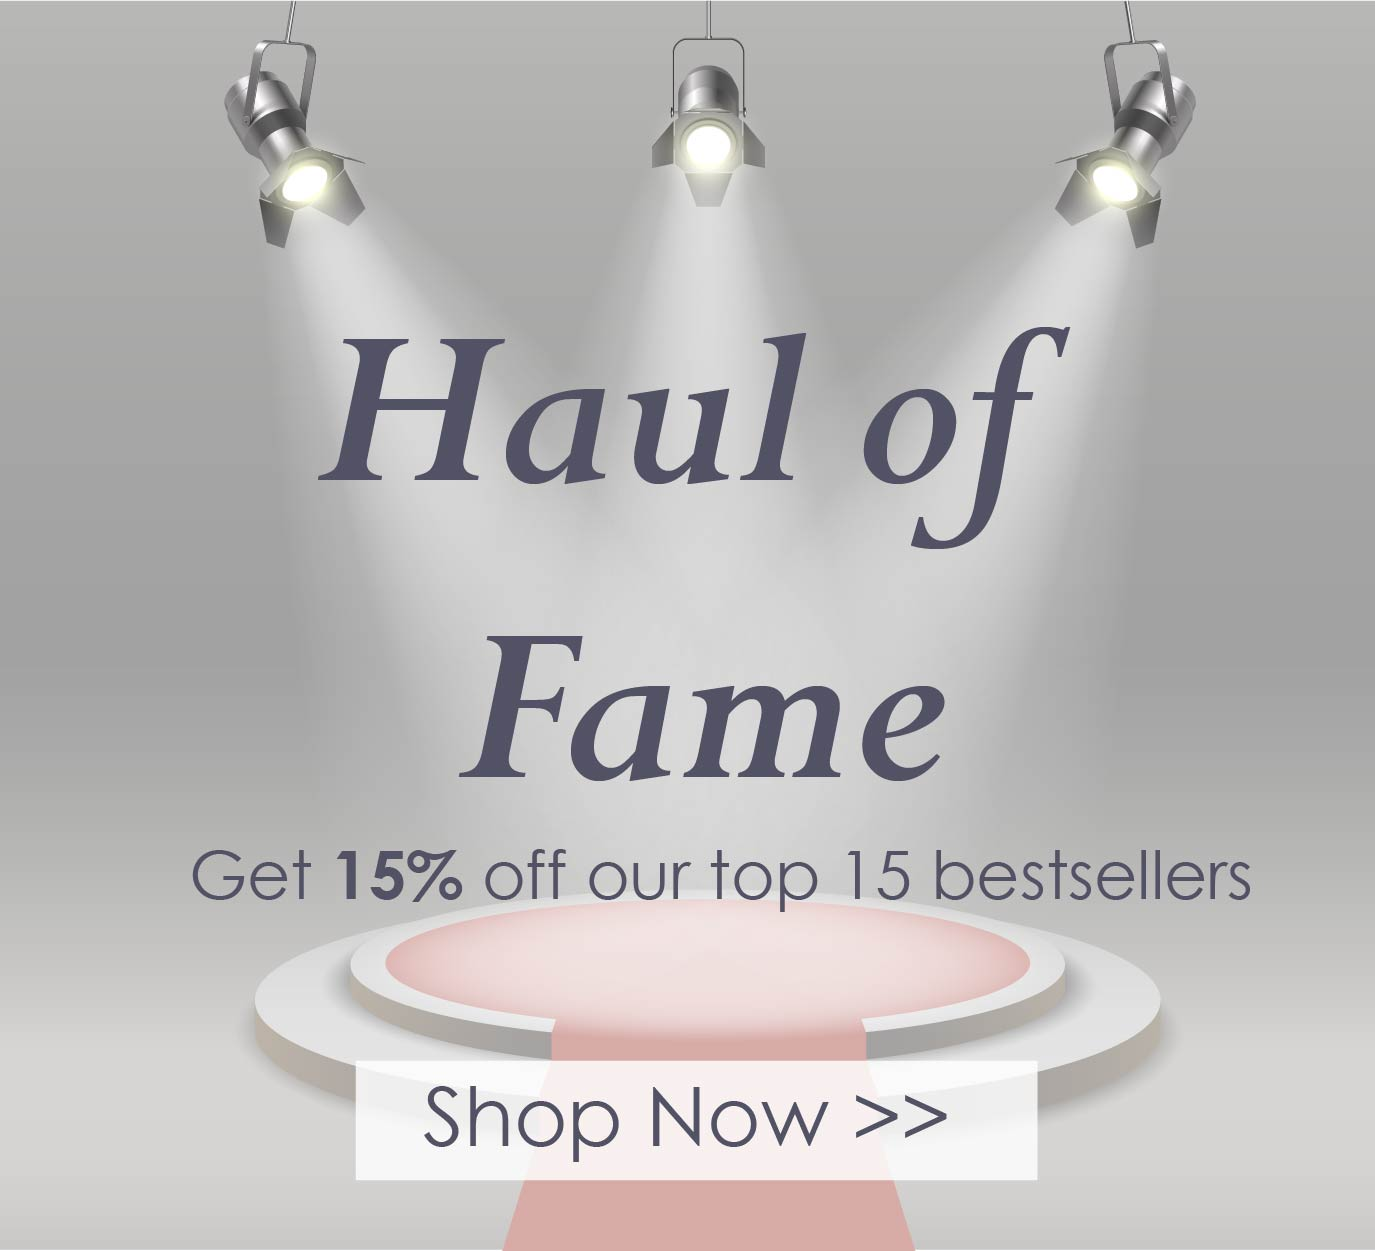 Haul of Fame - 15% off our 15 Bestsellers